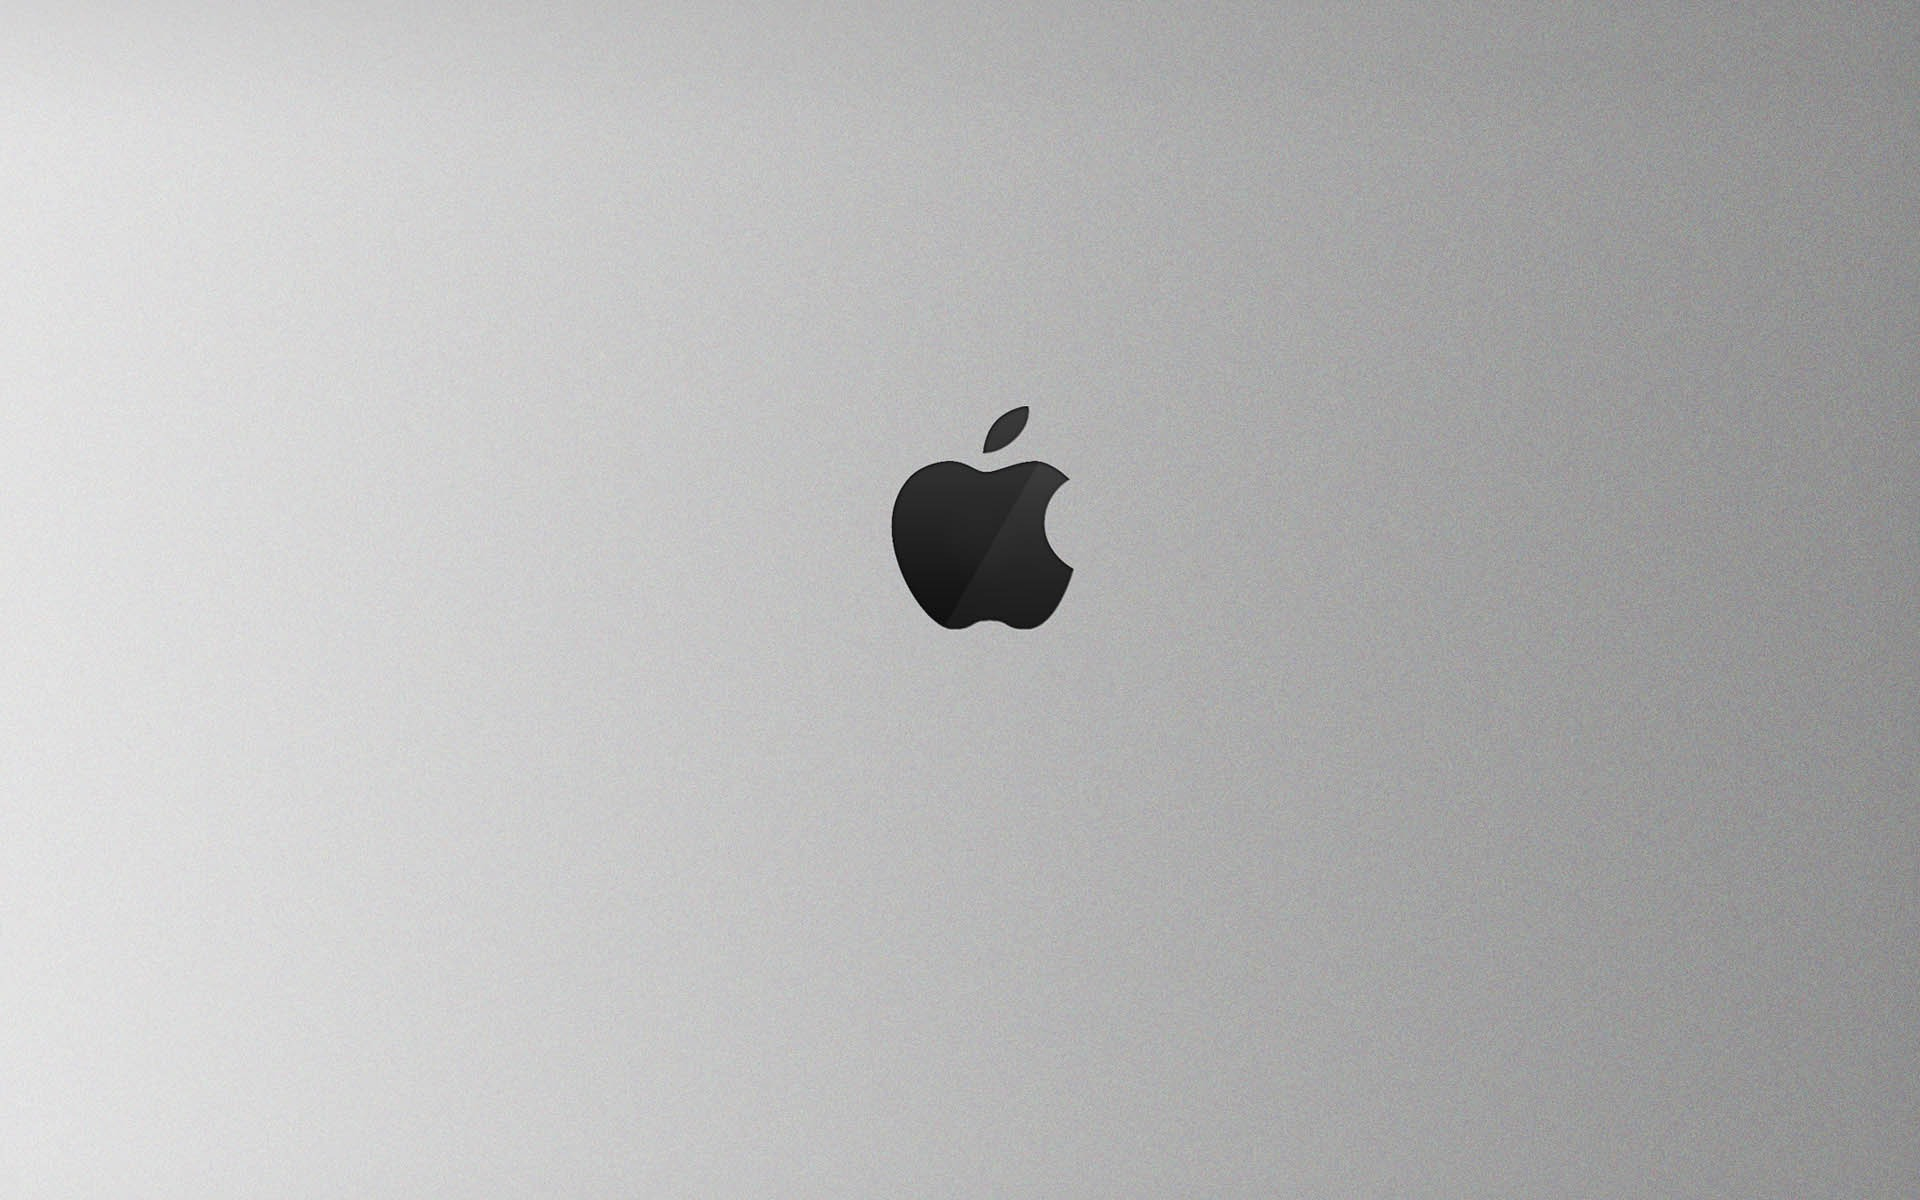 apple logo hd wallpapers wallpaper 1920x1200